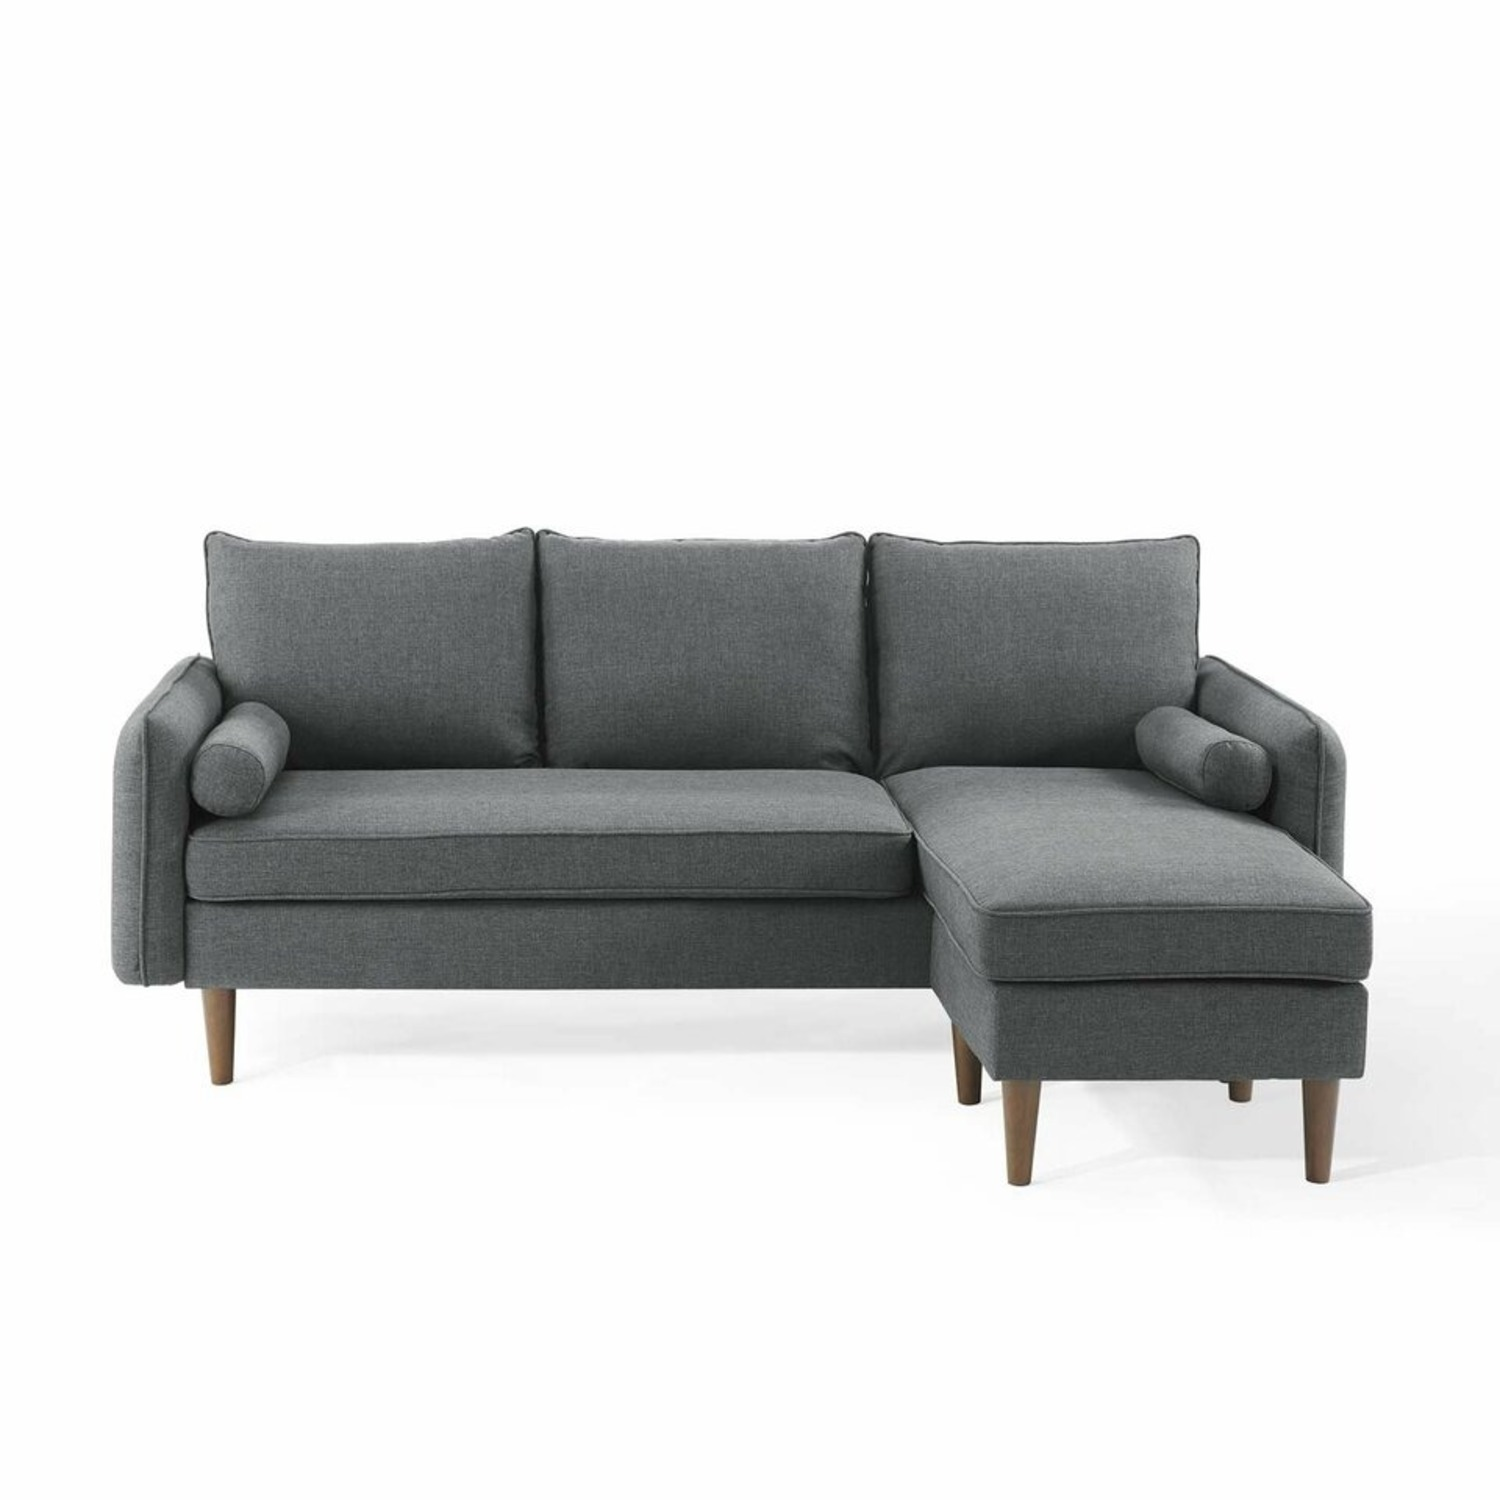 2-Piece Sectional Sofa In Gray Upholstery Finish - image-1